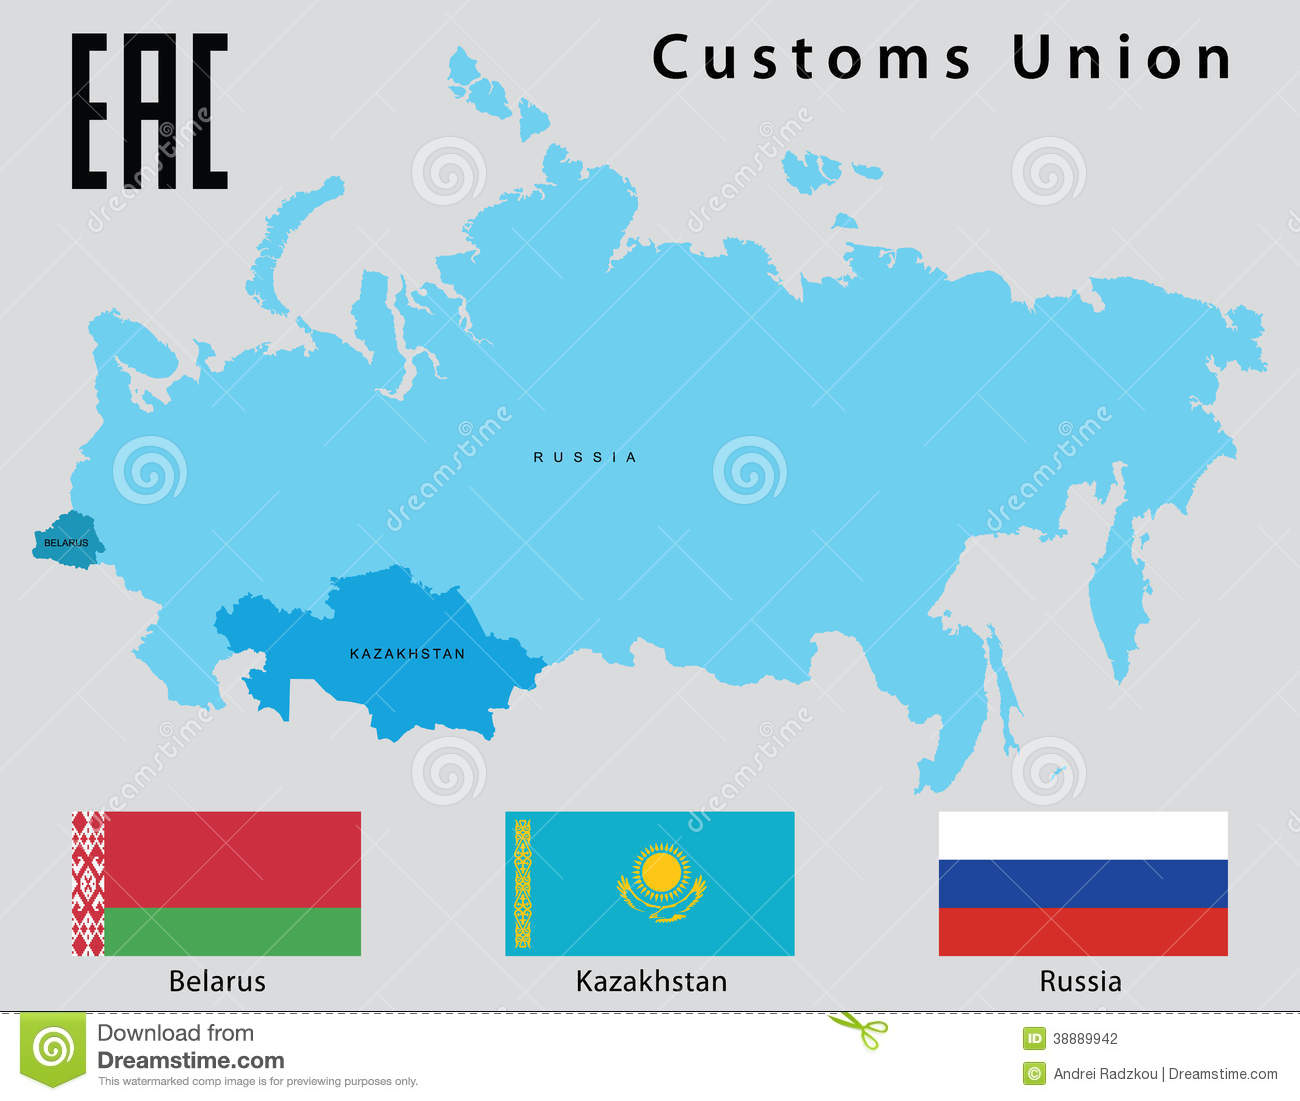 关税同盟(Customs union)